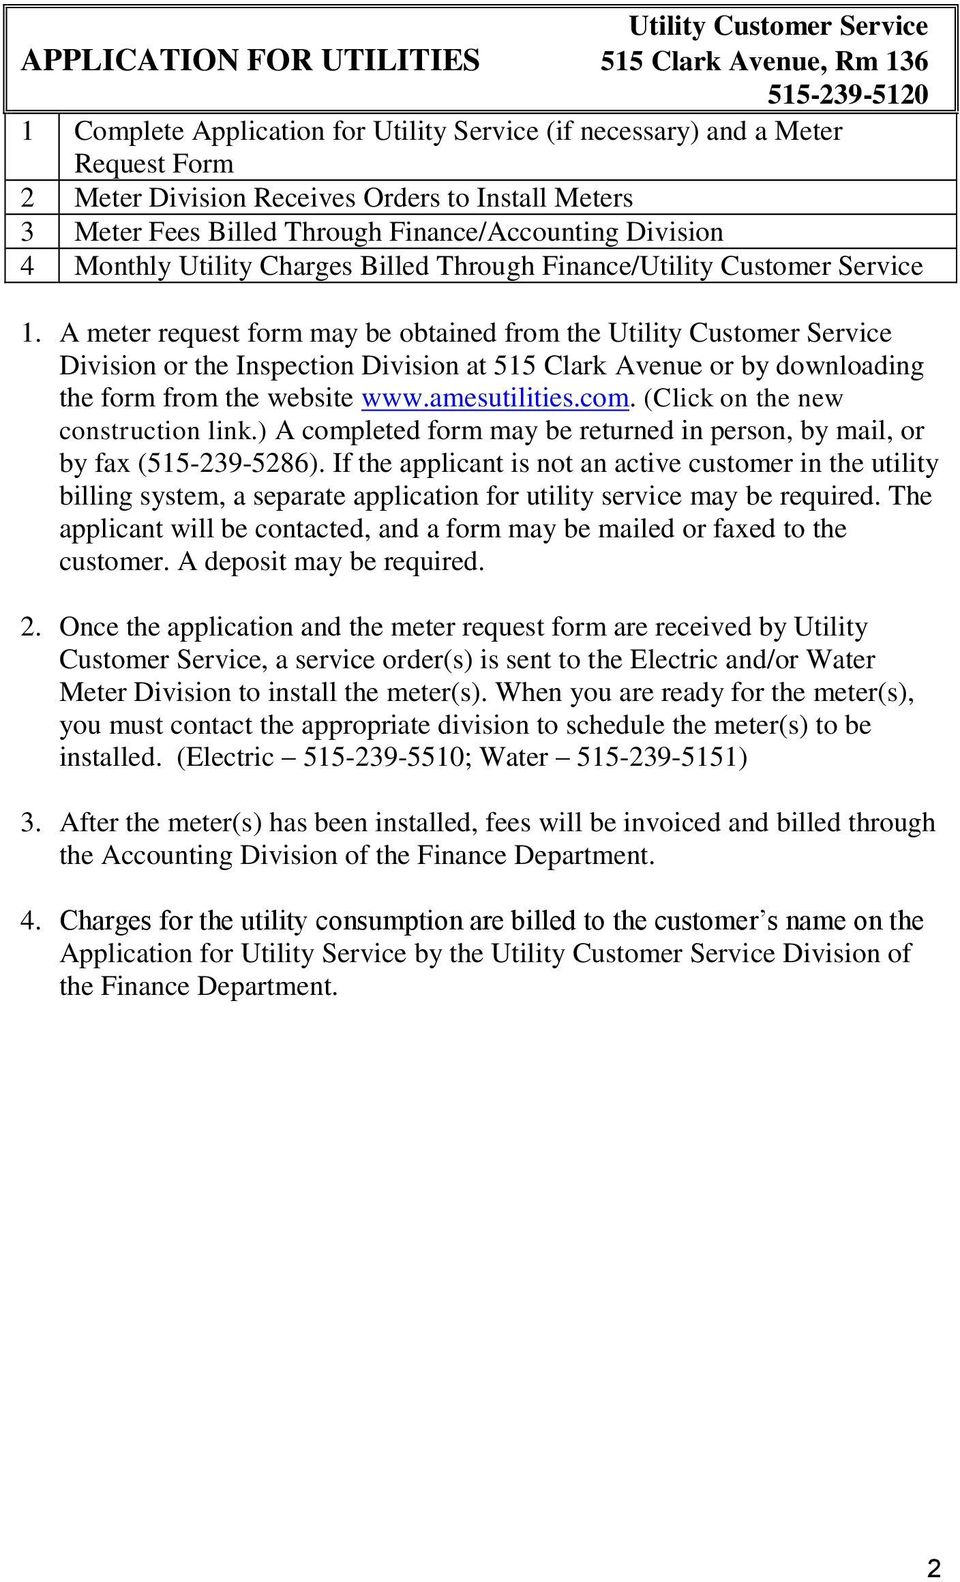 A meter request form may be obtained from the Utility Customer Service Division or the Inspection Division at 515 Clark Avenue or by downloading the form from the website www.amesutilities.com.